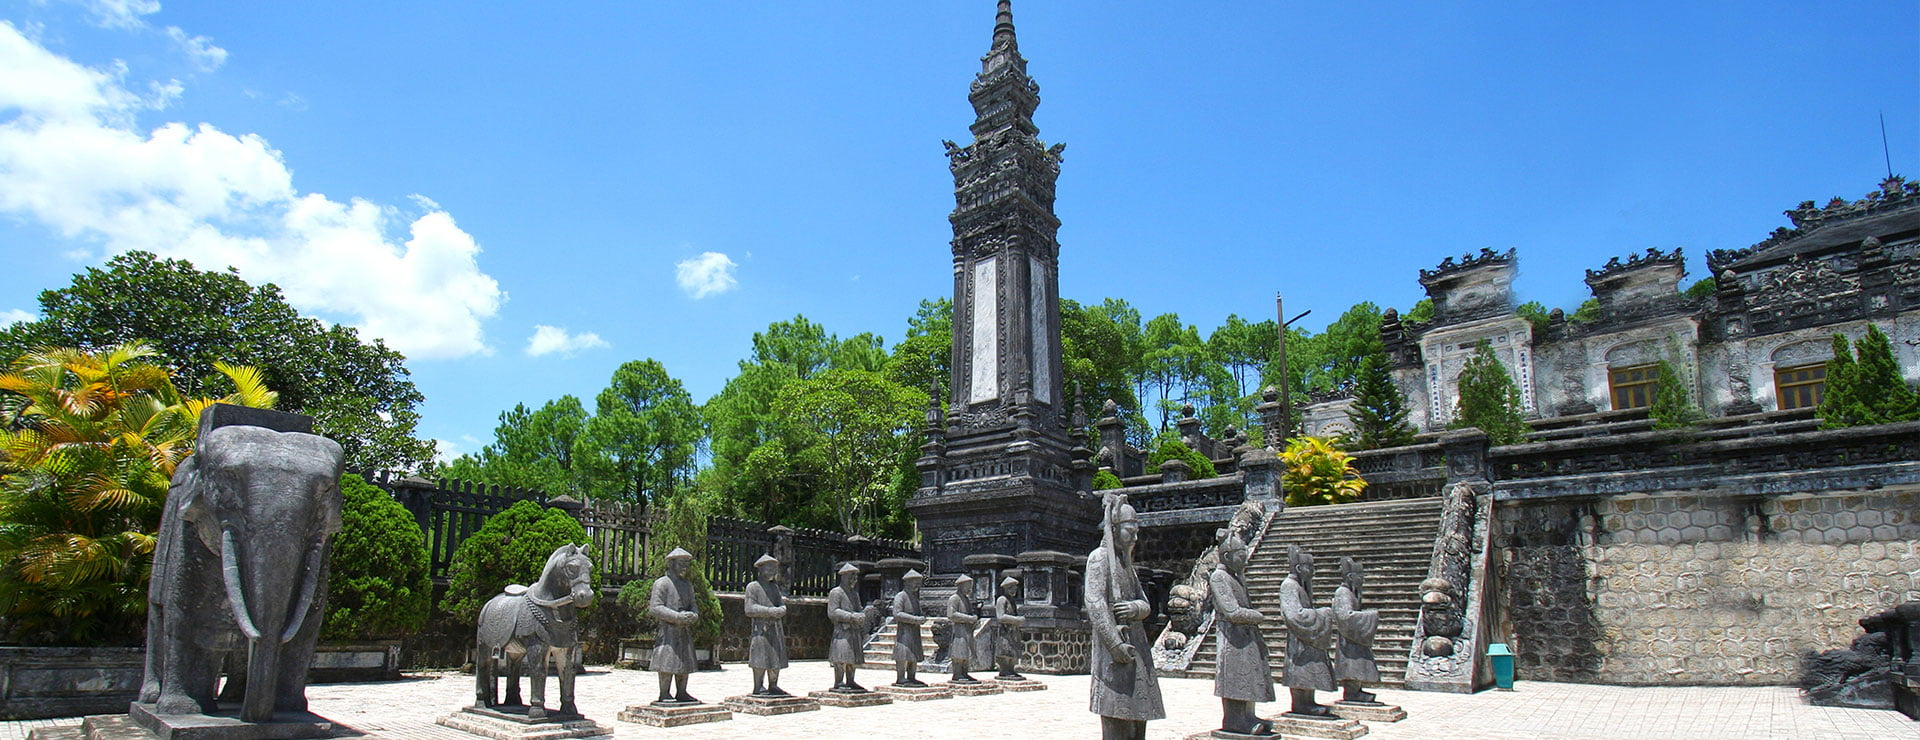 Check all this list while being in Hue, the imperial city of Vietnam